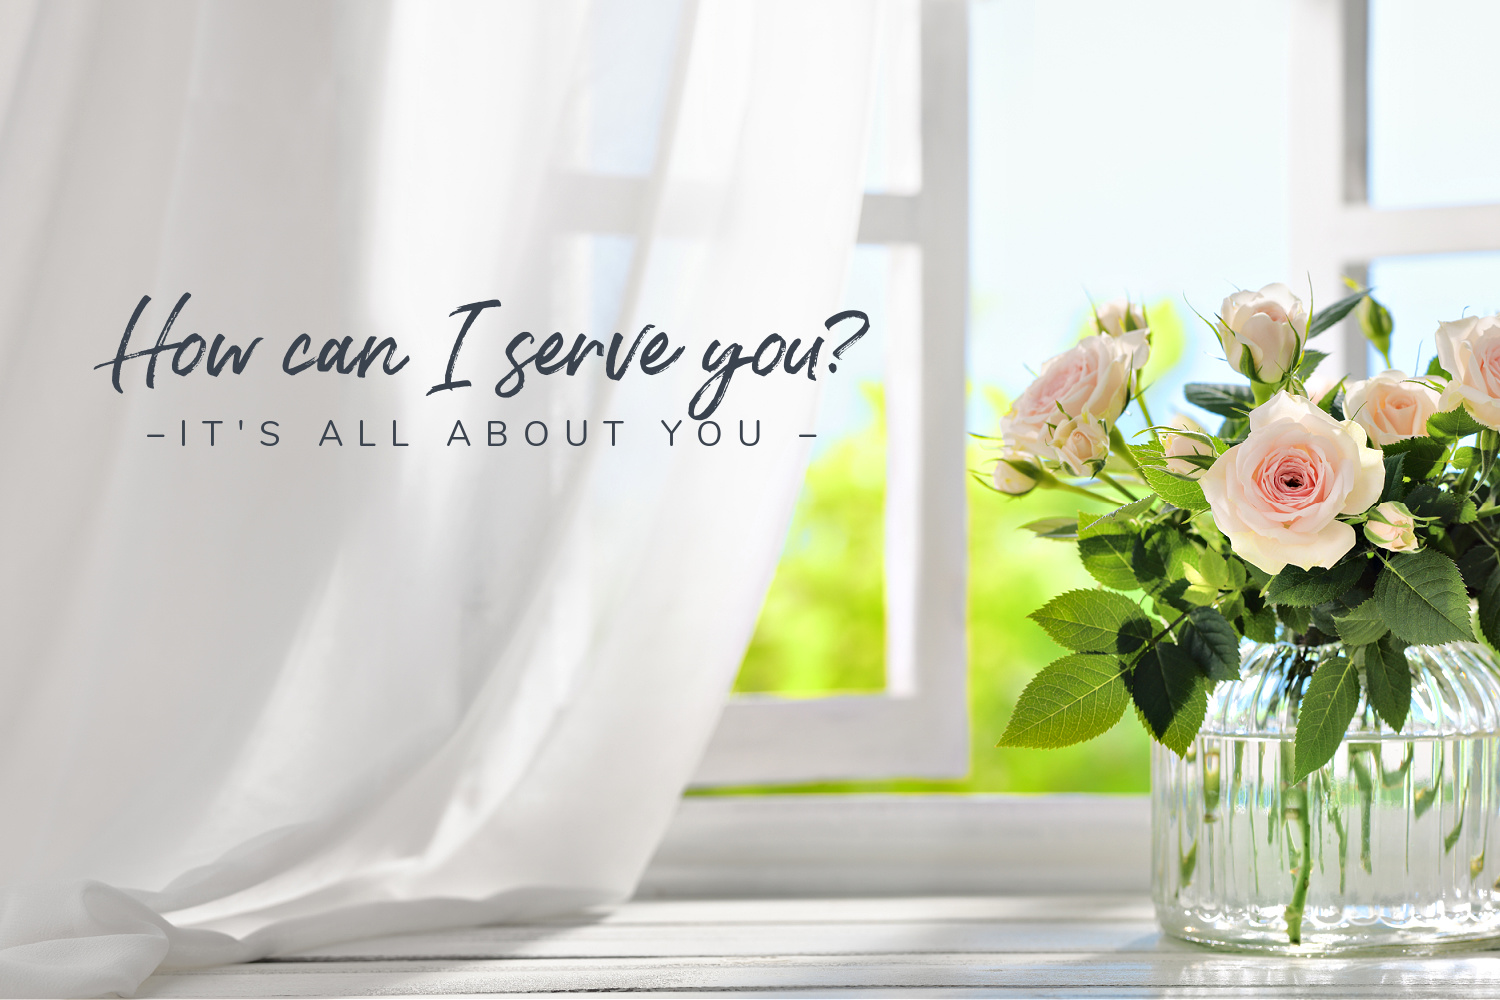 It's all about you! Answering your questions relating to women in their 50's and beyond. Recipes, crafts, faith, encouragement with reliable and relatable resources relating to worry, stress, relationships, purpose, fitness, purpose and life balance!